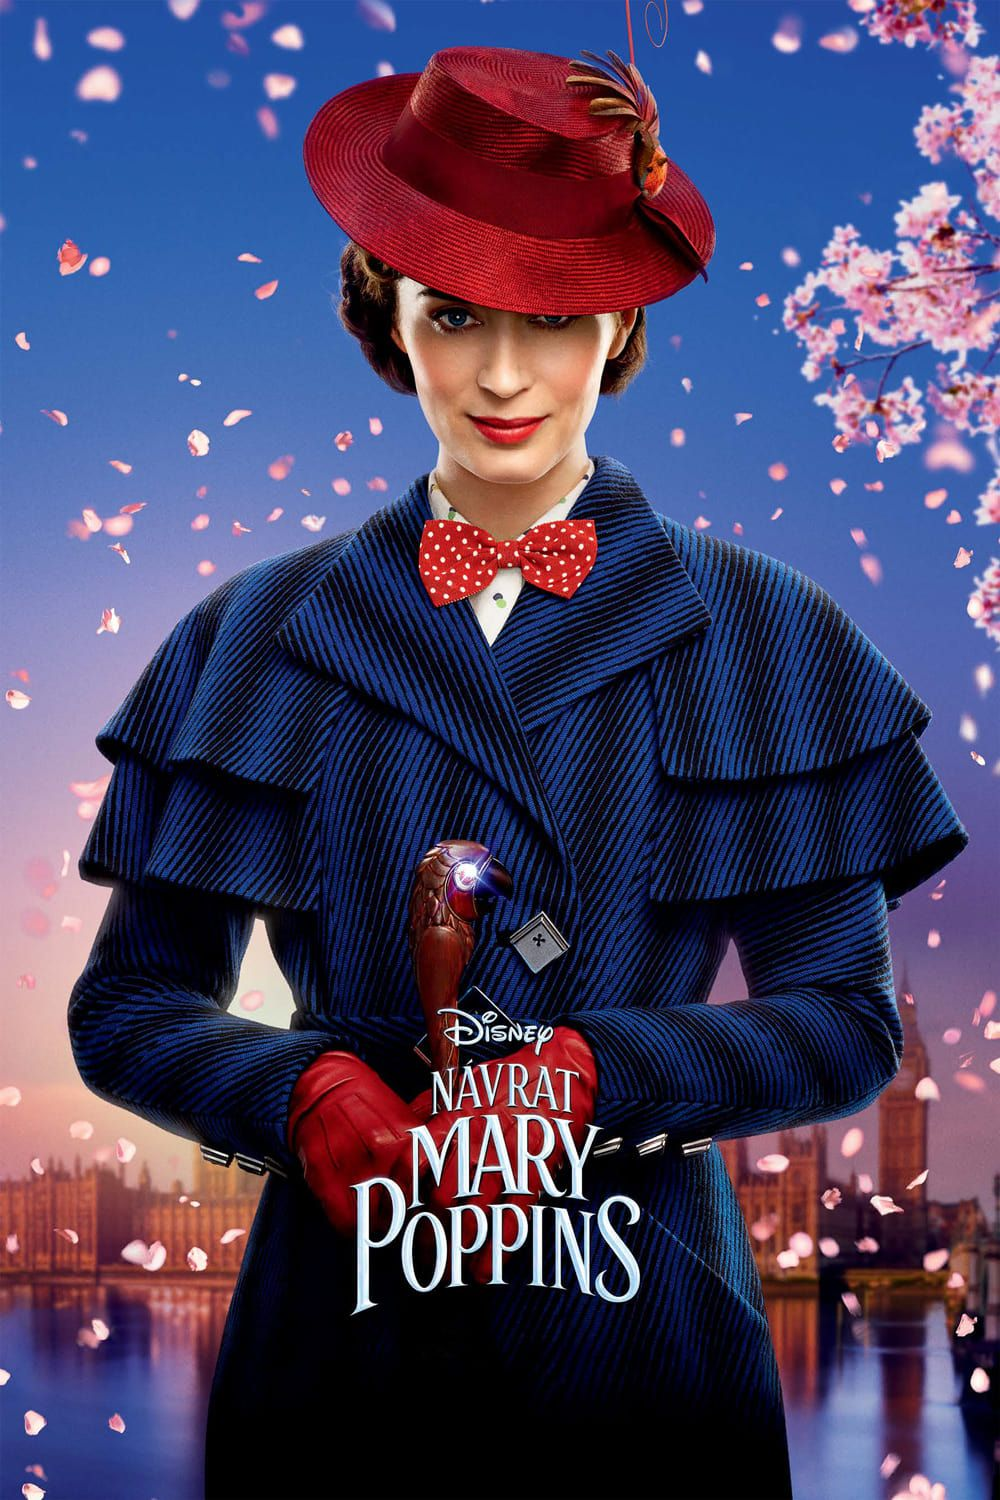 DOWNLOAD Mary Poppins Returns FULL MOVIE HD1080p Sub